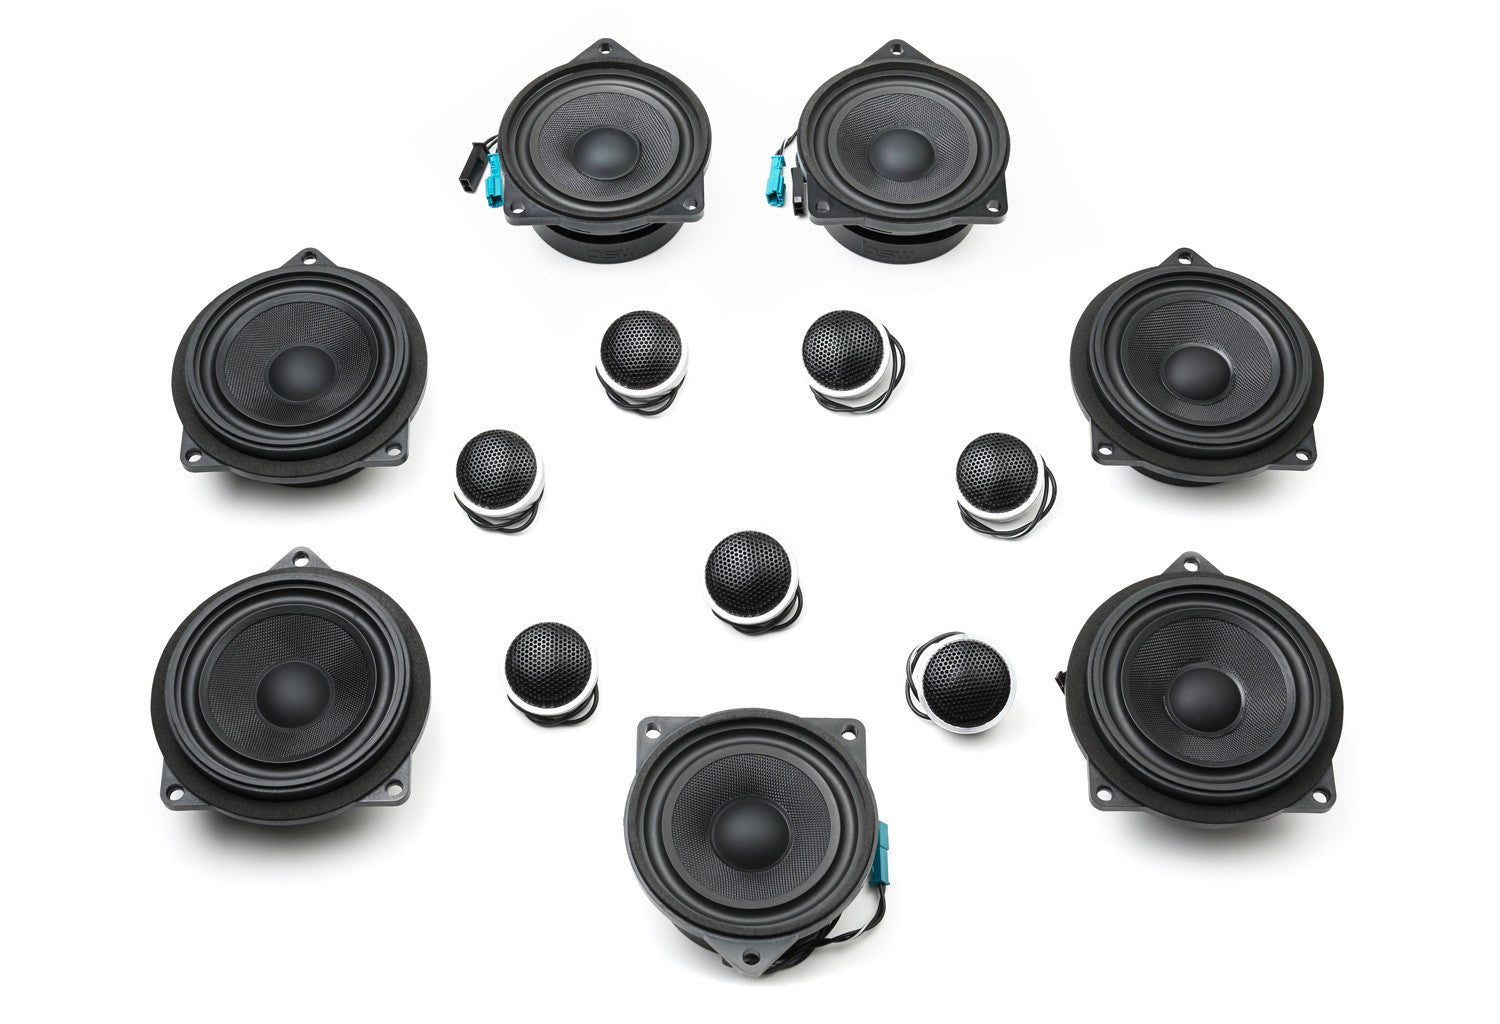 Stage One BMW Speaker Upgrade for G01/G02 X3/X4 with Harman Kardon